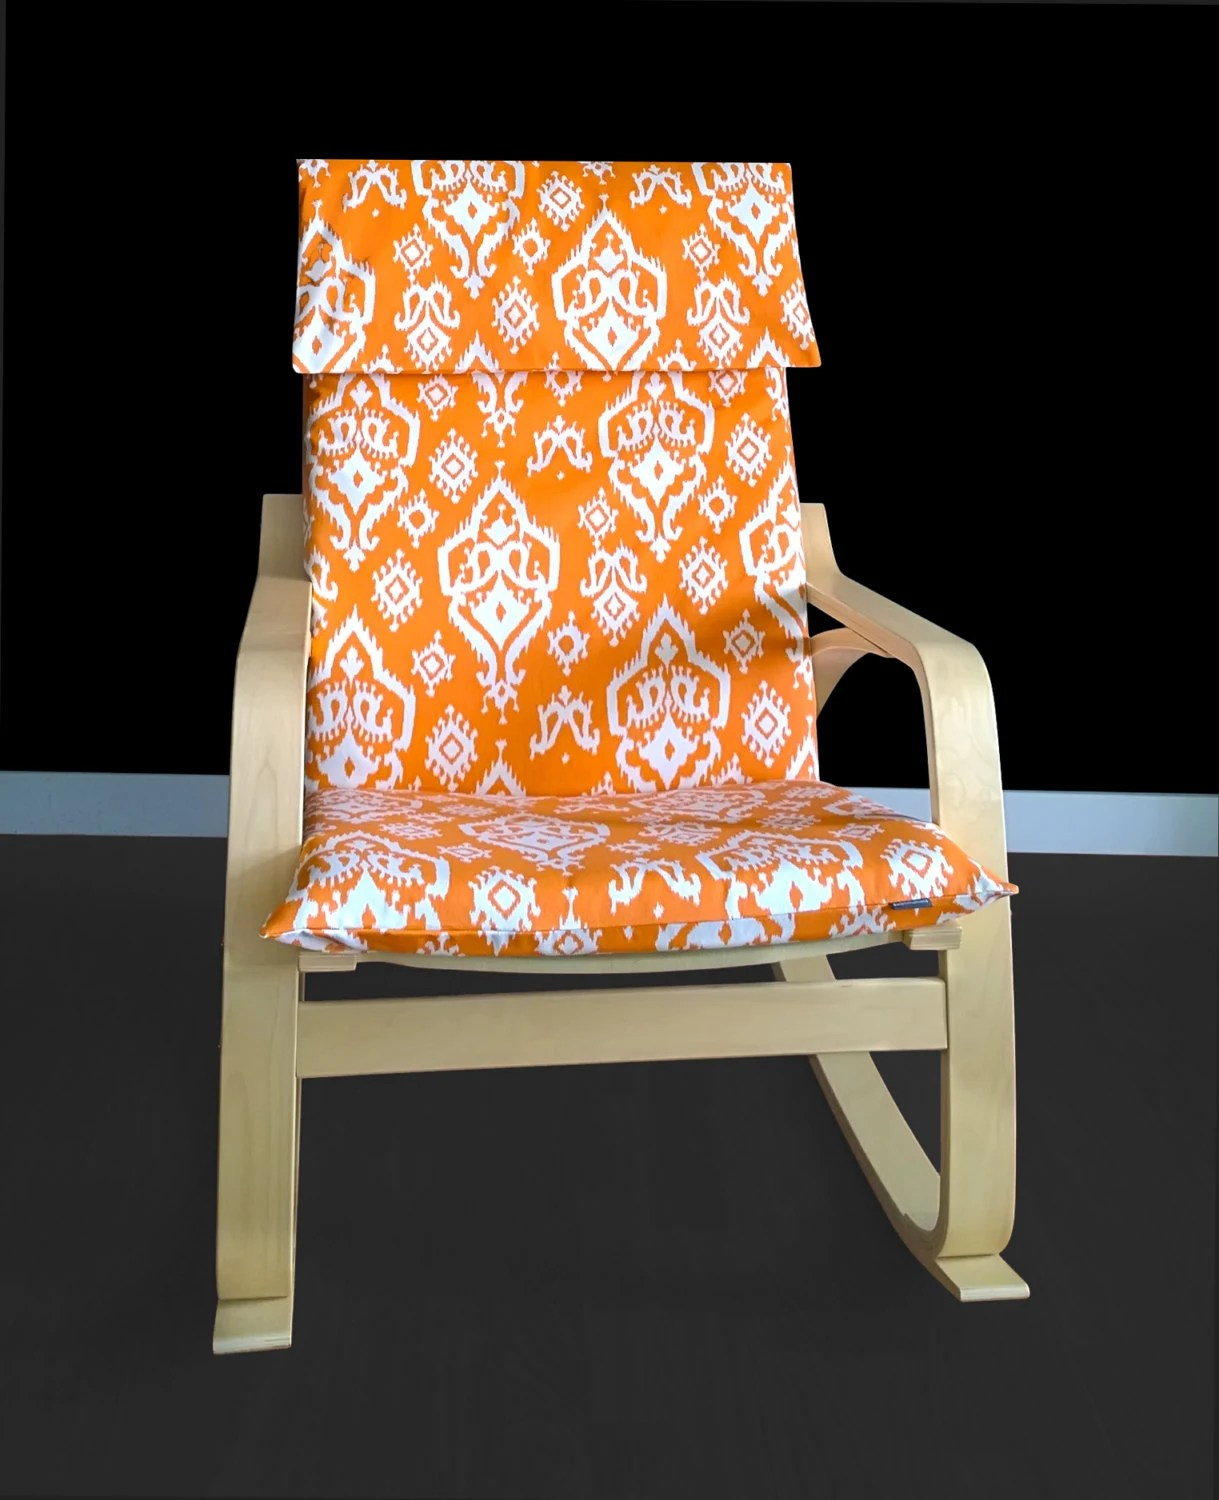 ikea orange chair covers toddler booster seat for kitchen custom indian print poÄng cover raji